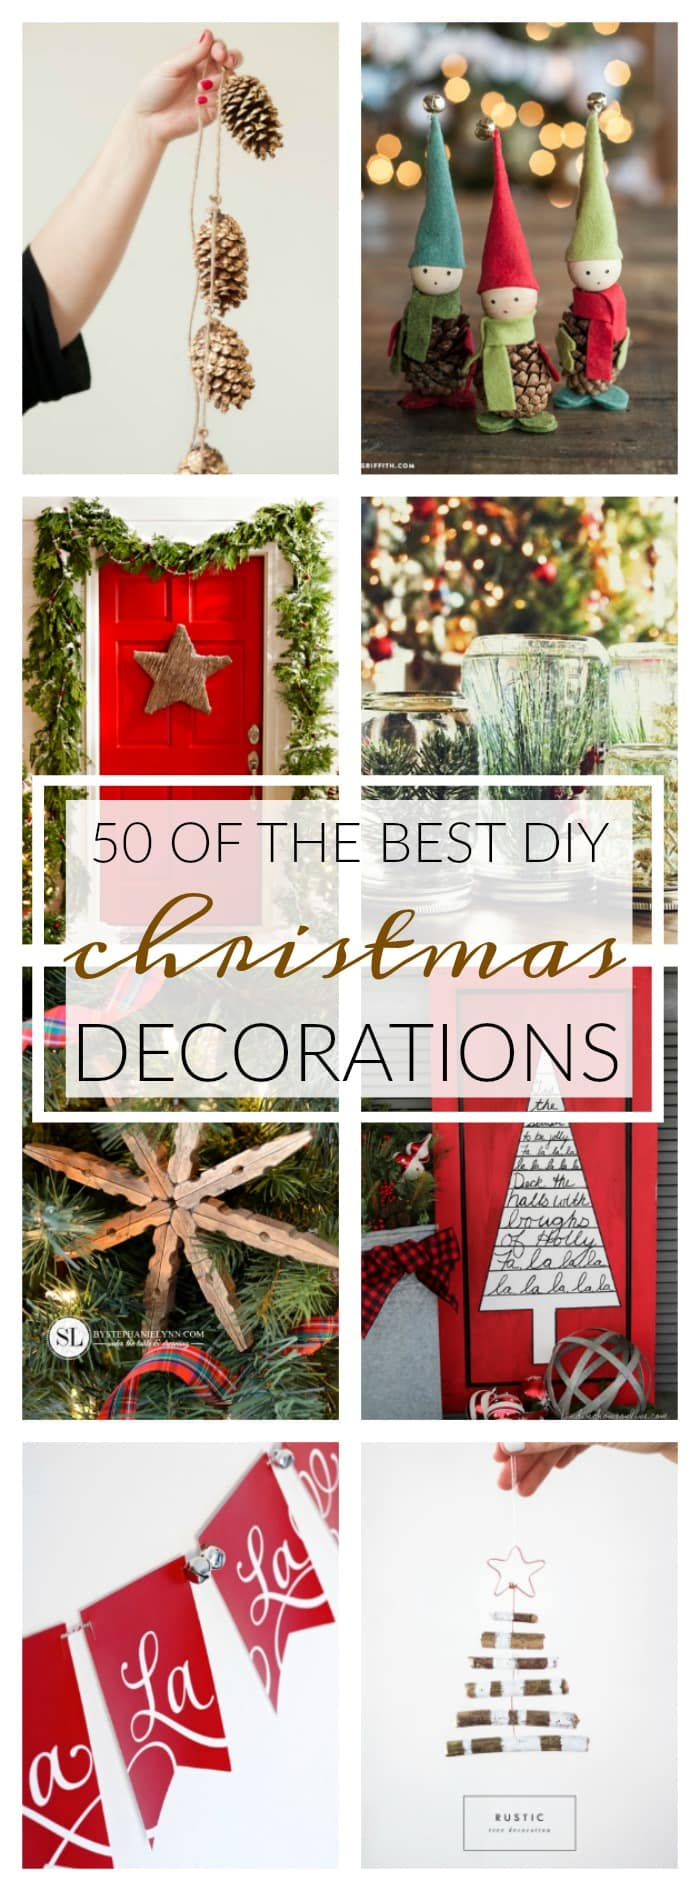 50 Of The Best Diy Christmas Decorations A Dash Of Sanity